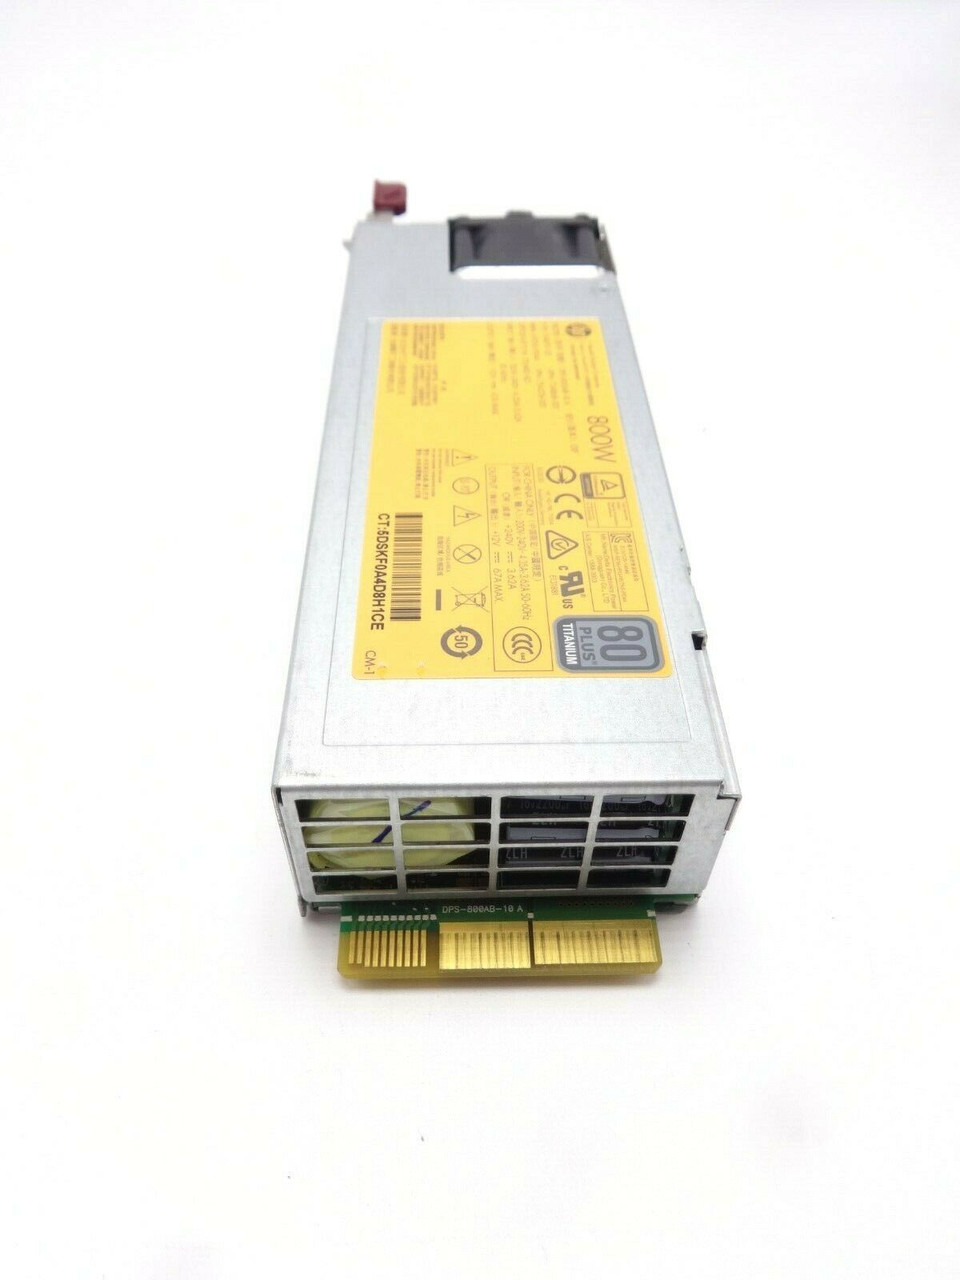 HP 754378-001 HPe 800Watt Flex Slot Titanium Power Supply